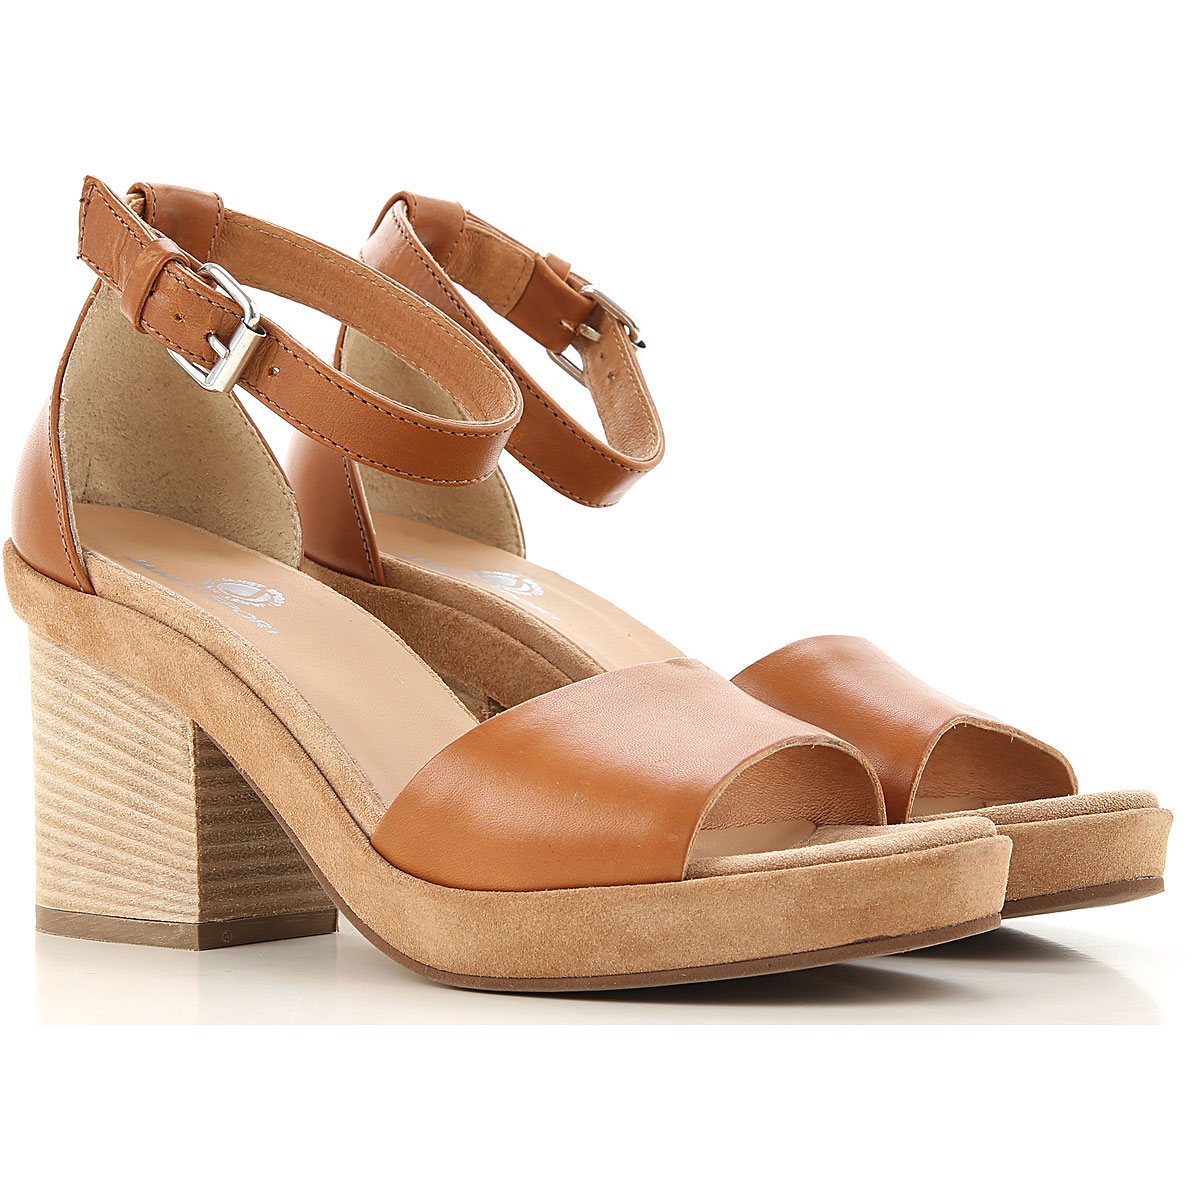 Janet & Janet Sandals for Women On Sale in Outlet, Papaya, Leather, 2019, 6 8